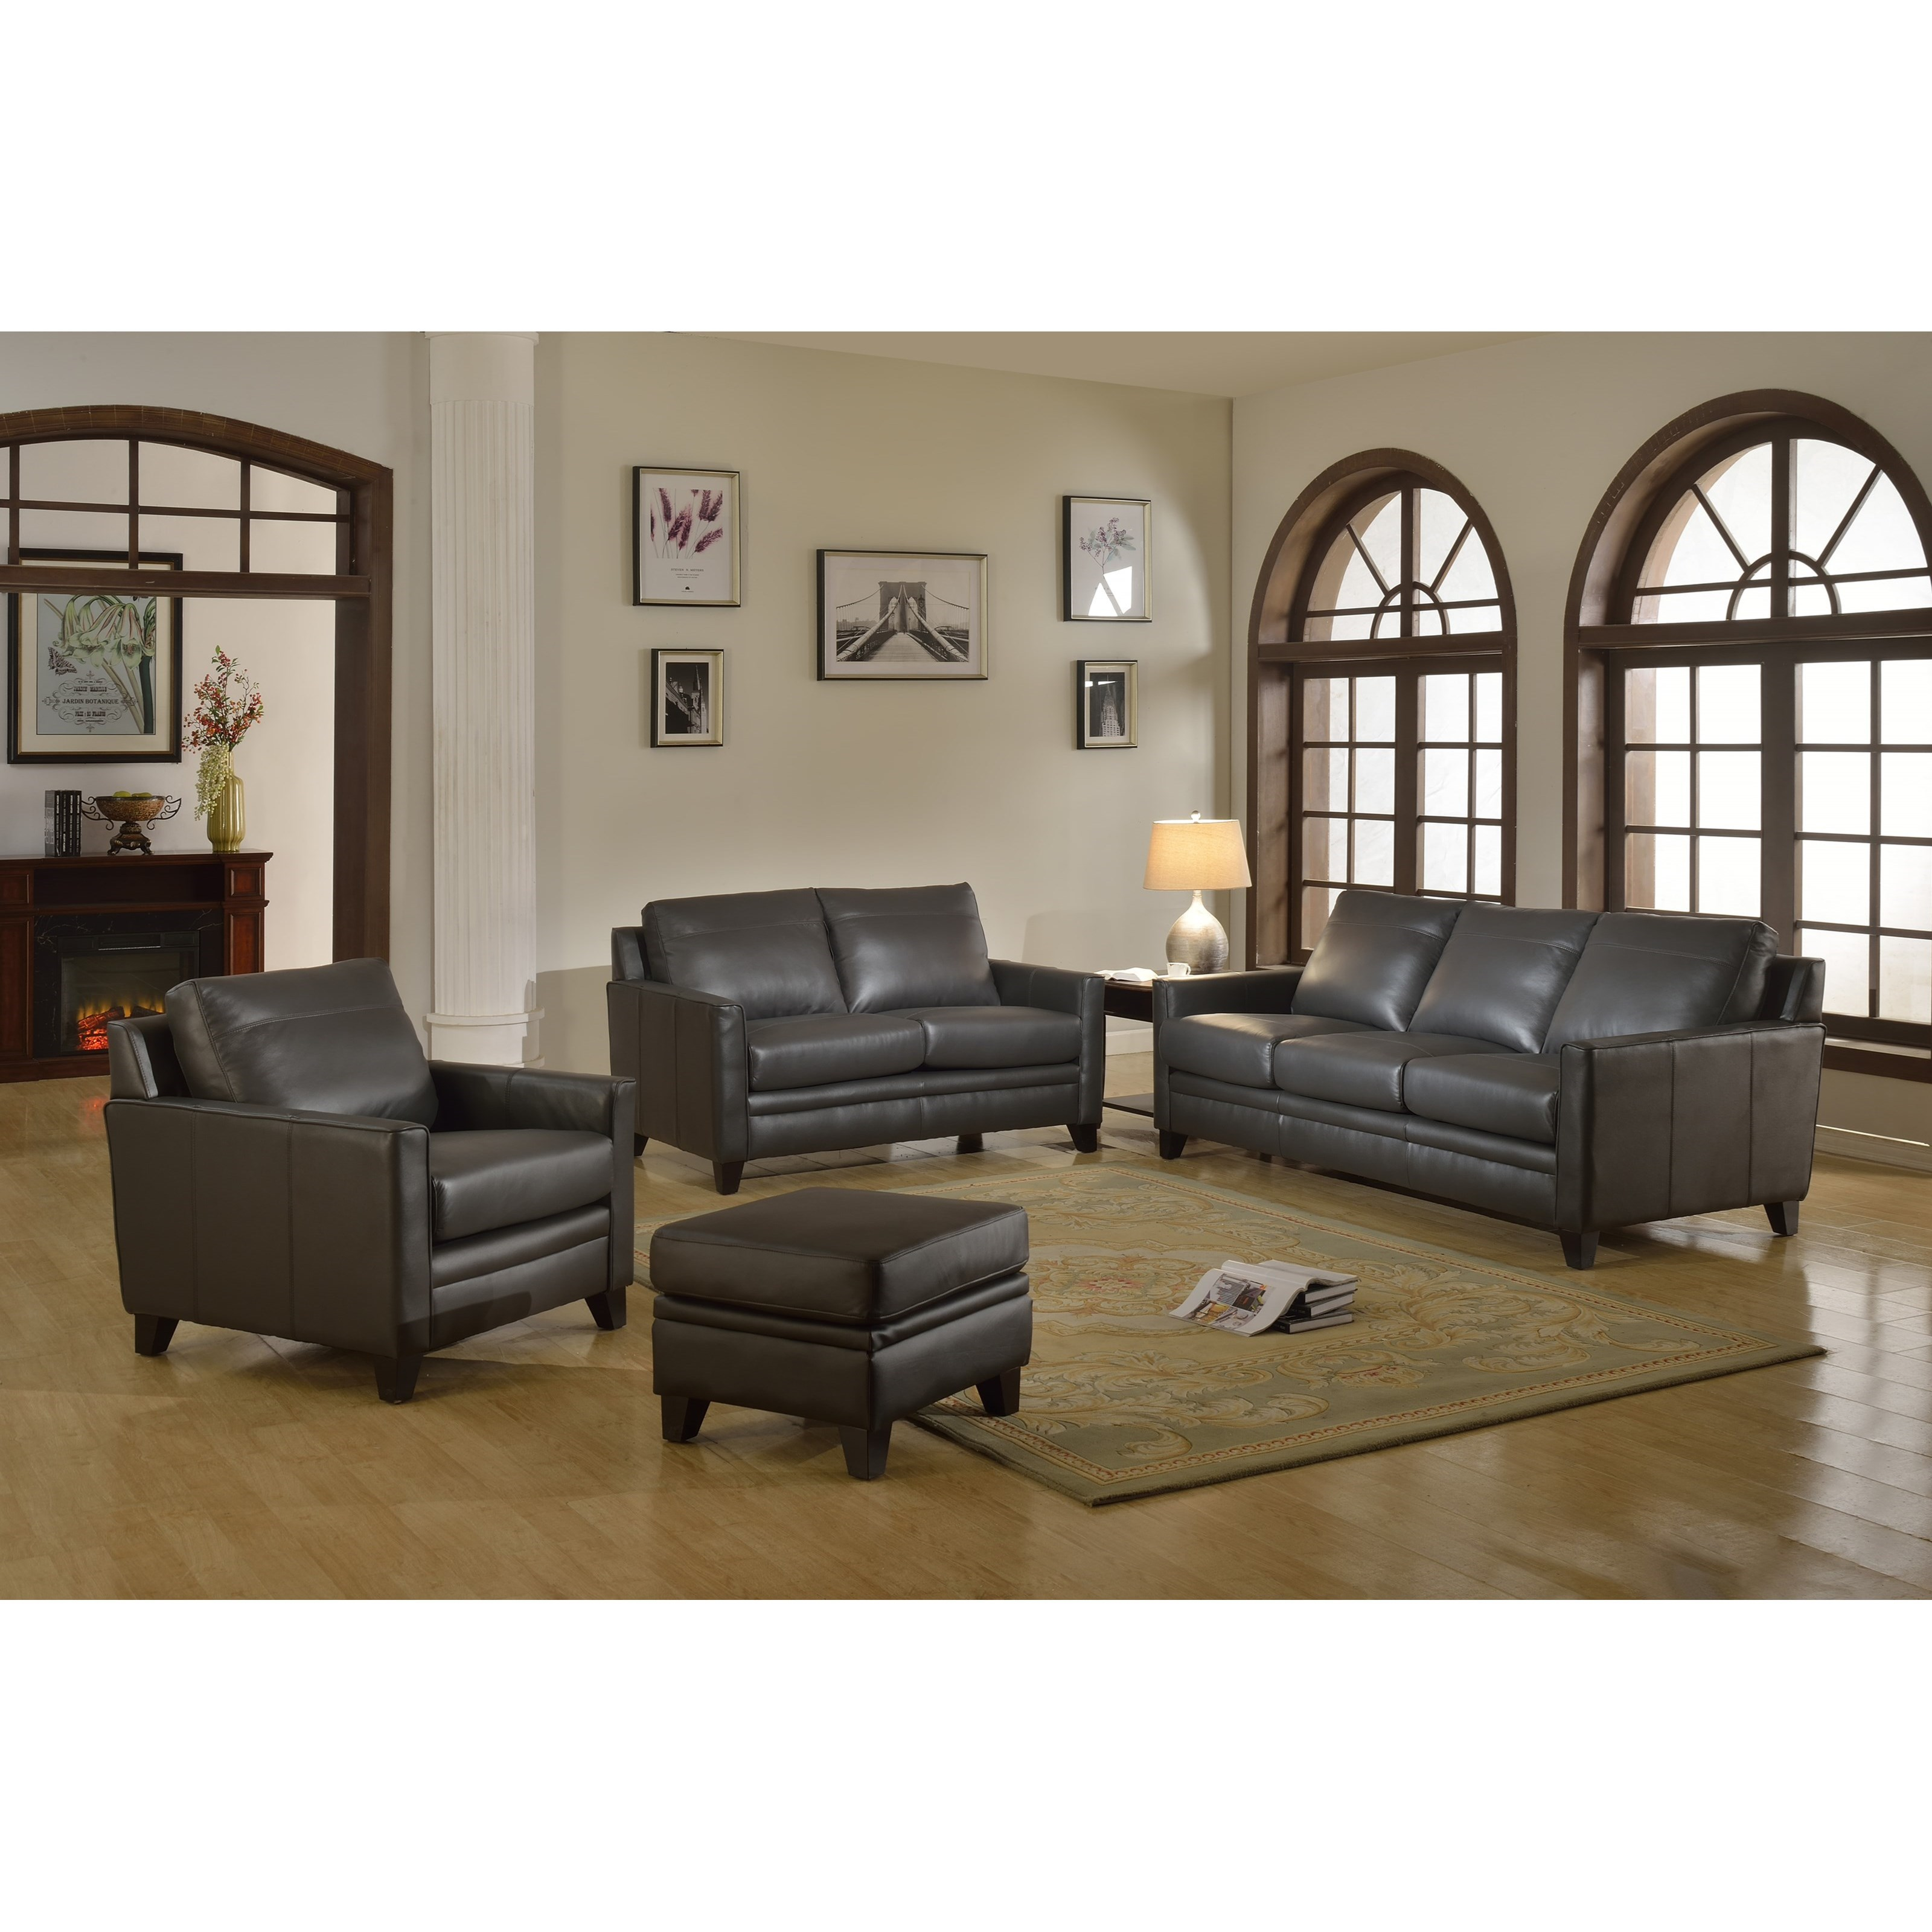 Fletcher Leather Living Room Group by Leather Italia USA at Corner Furniture